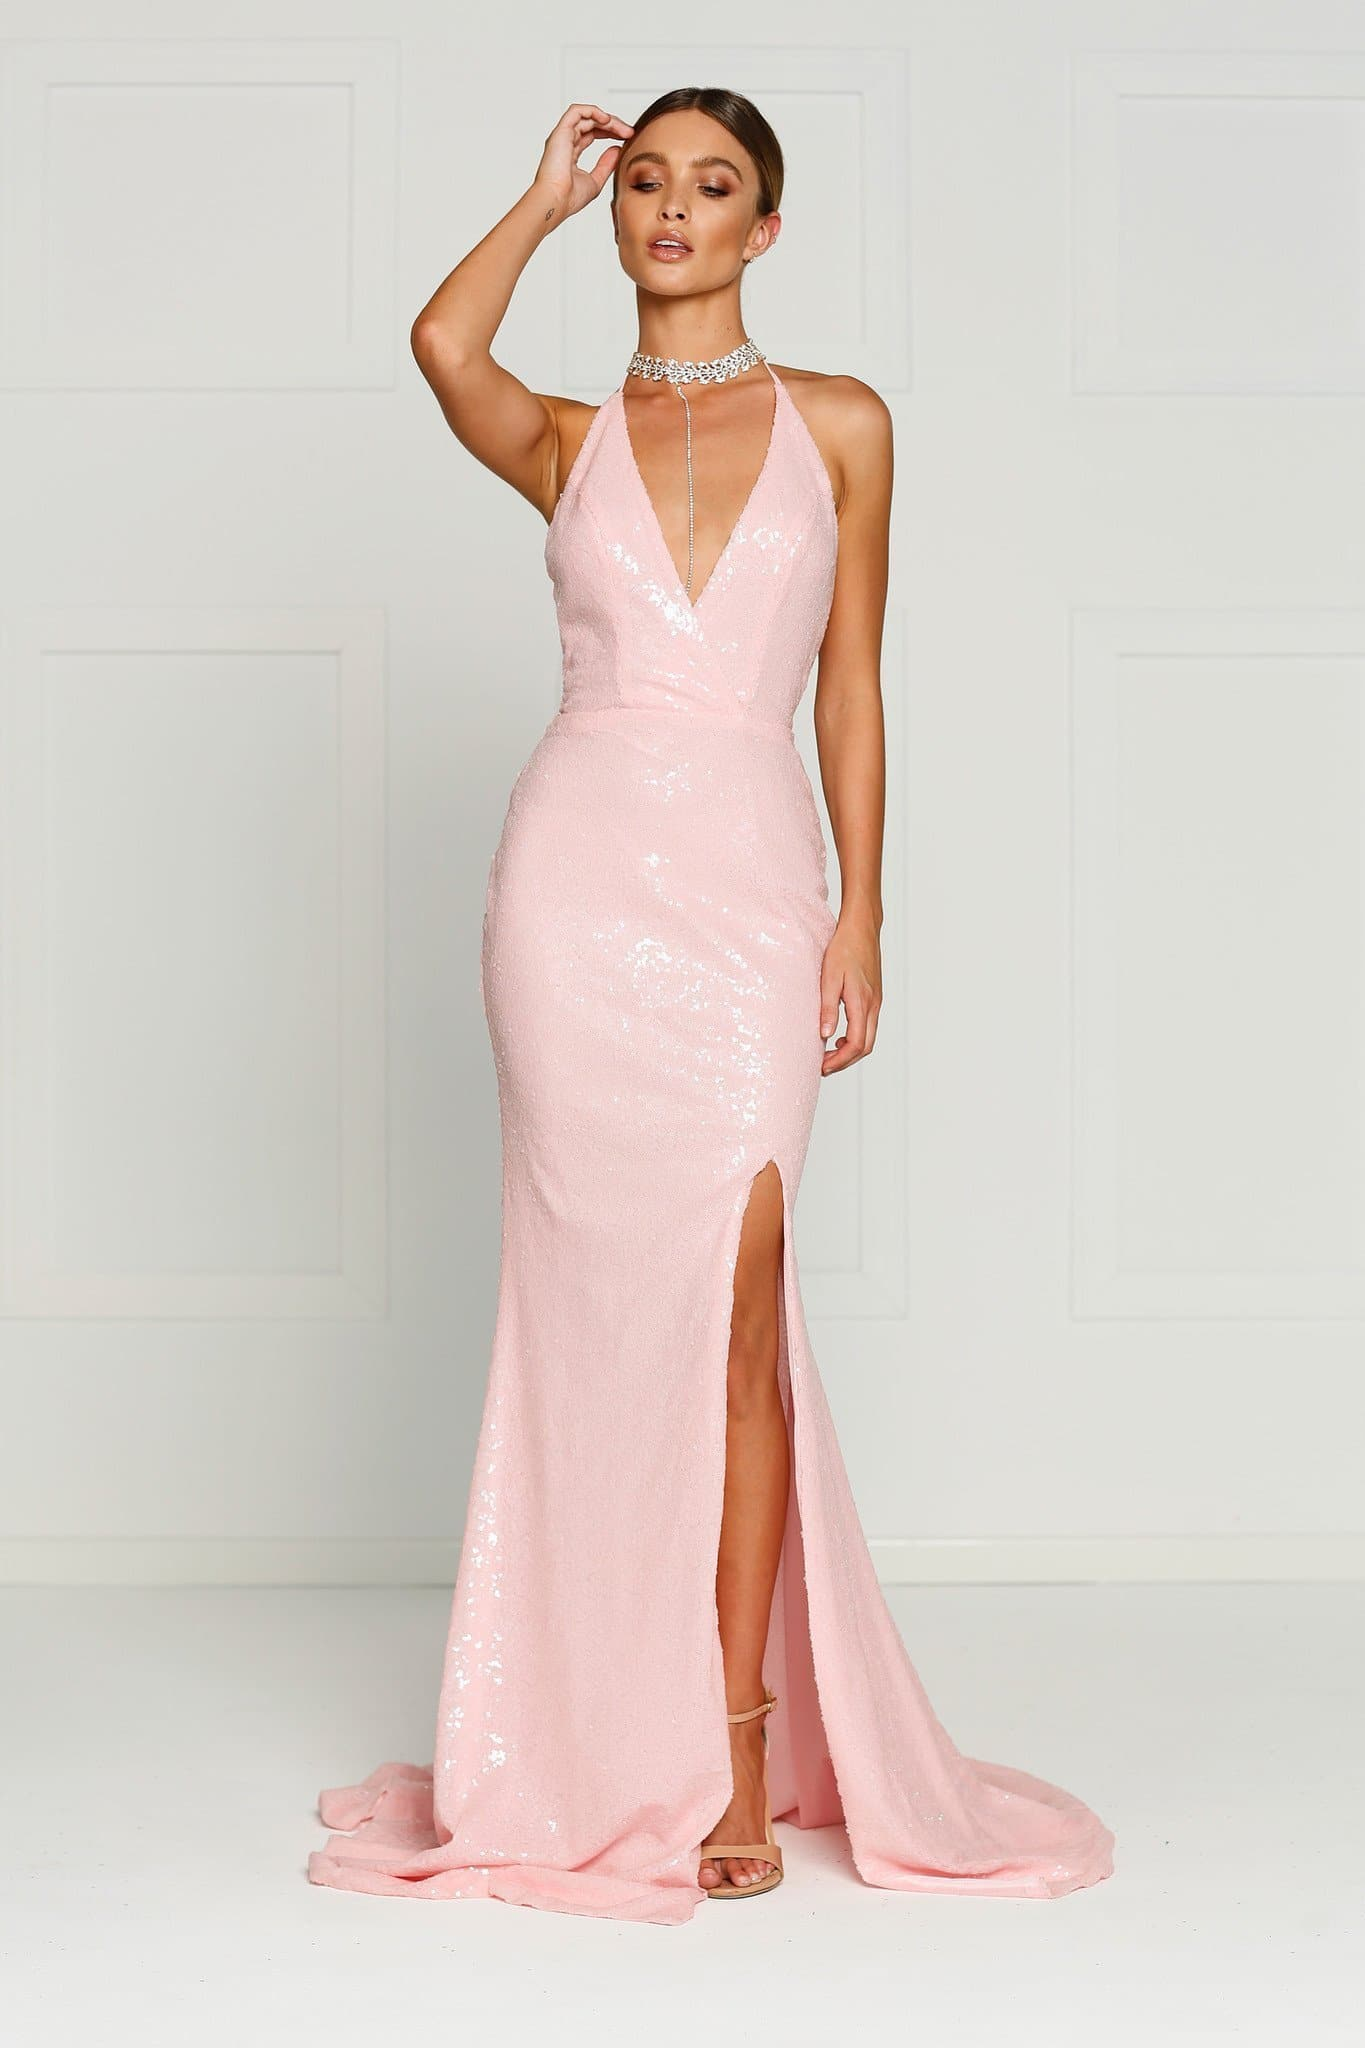 A&N Kylie- Pink Sequin Dress with Low Back and Side Slit – A&N Boutique